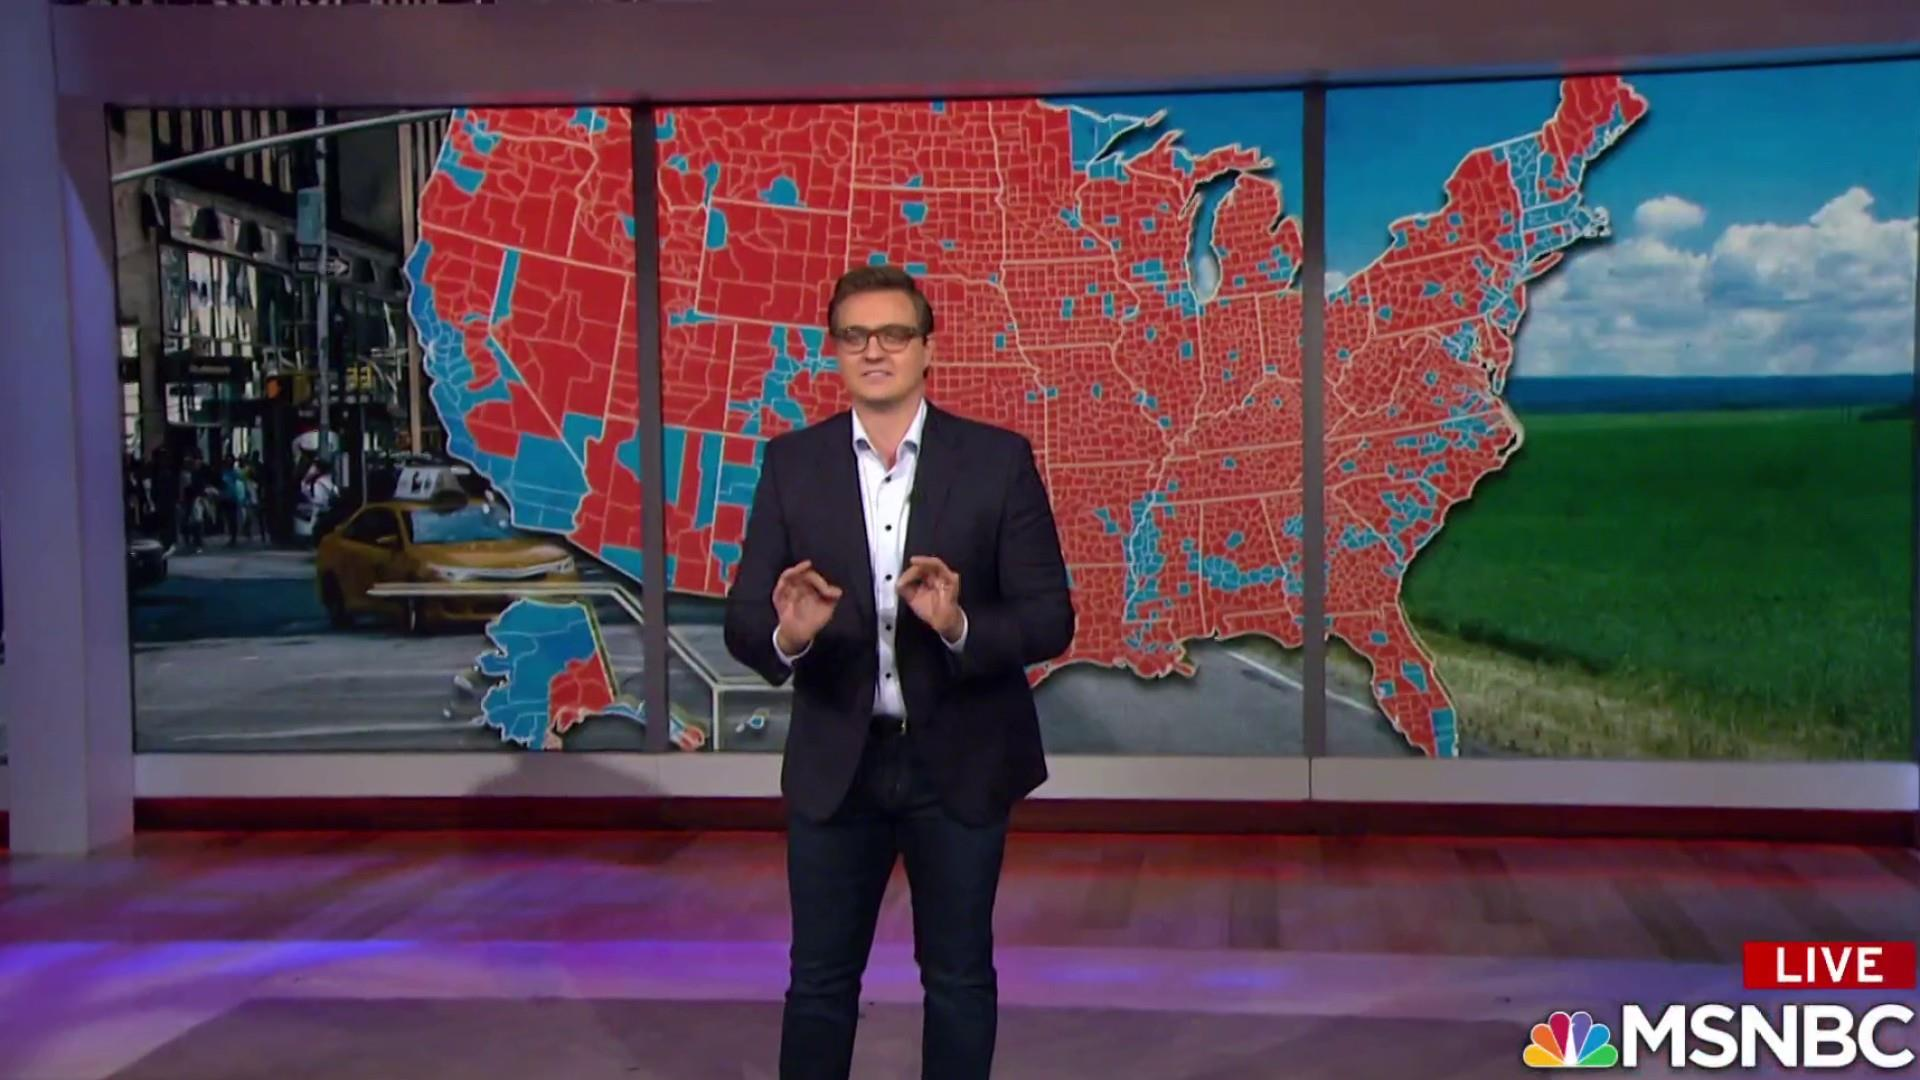 Chris Hayes: We should run the presidential election the way we run EVERY other election